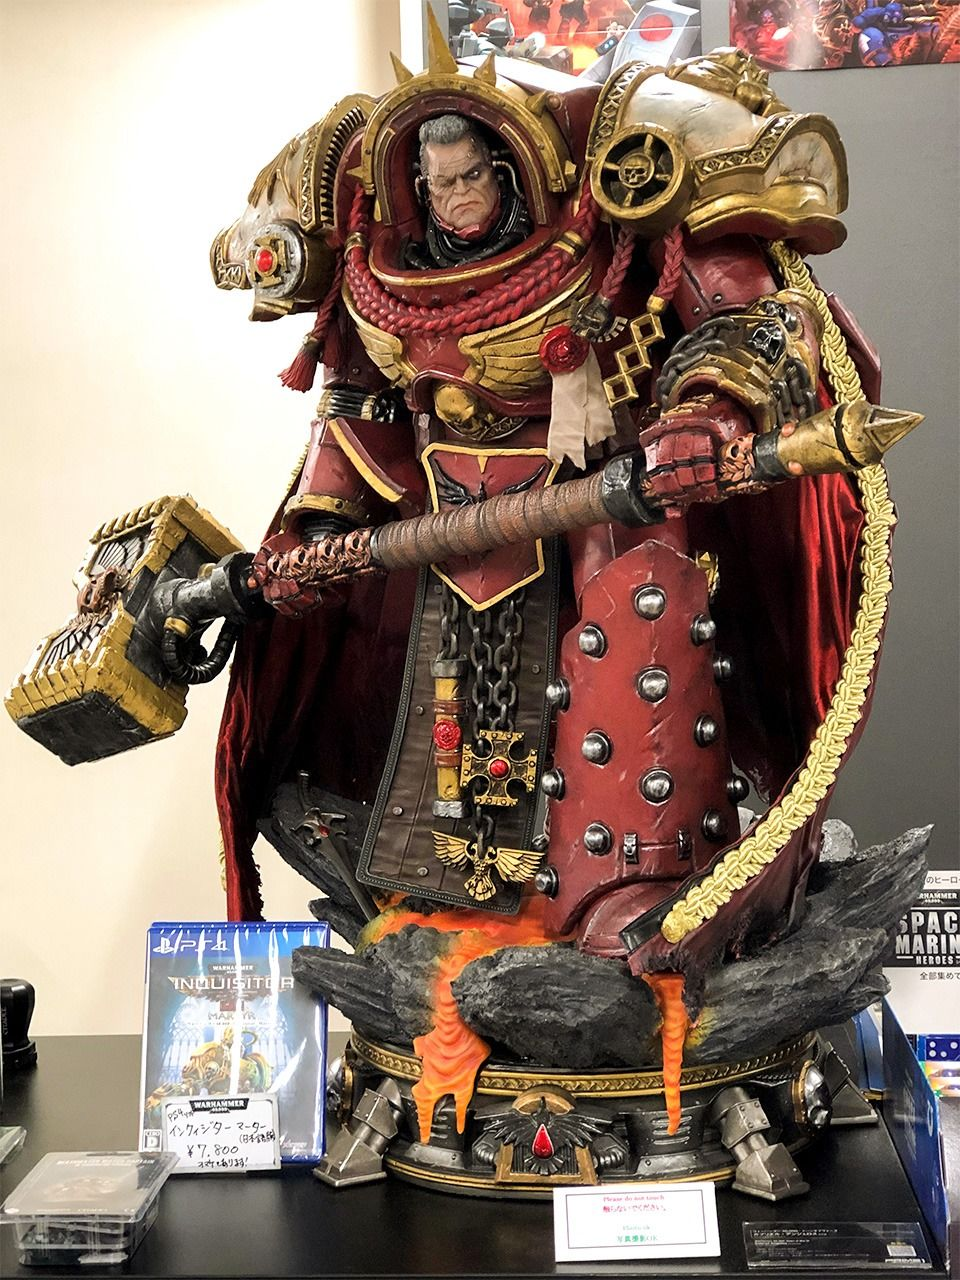 Games Workshop: Building a Hobby Empire in Japan One Figure